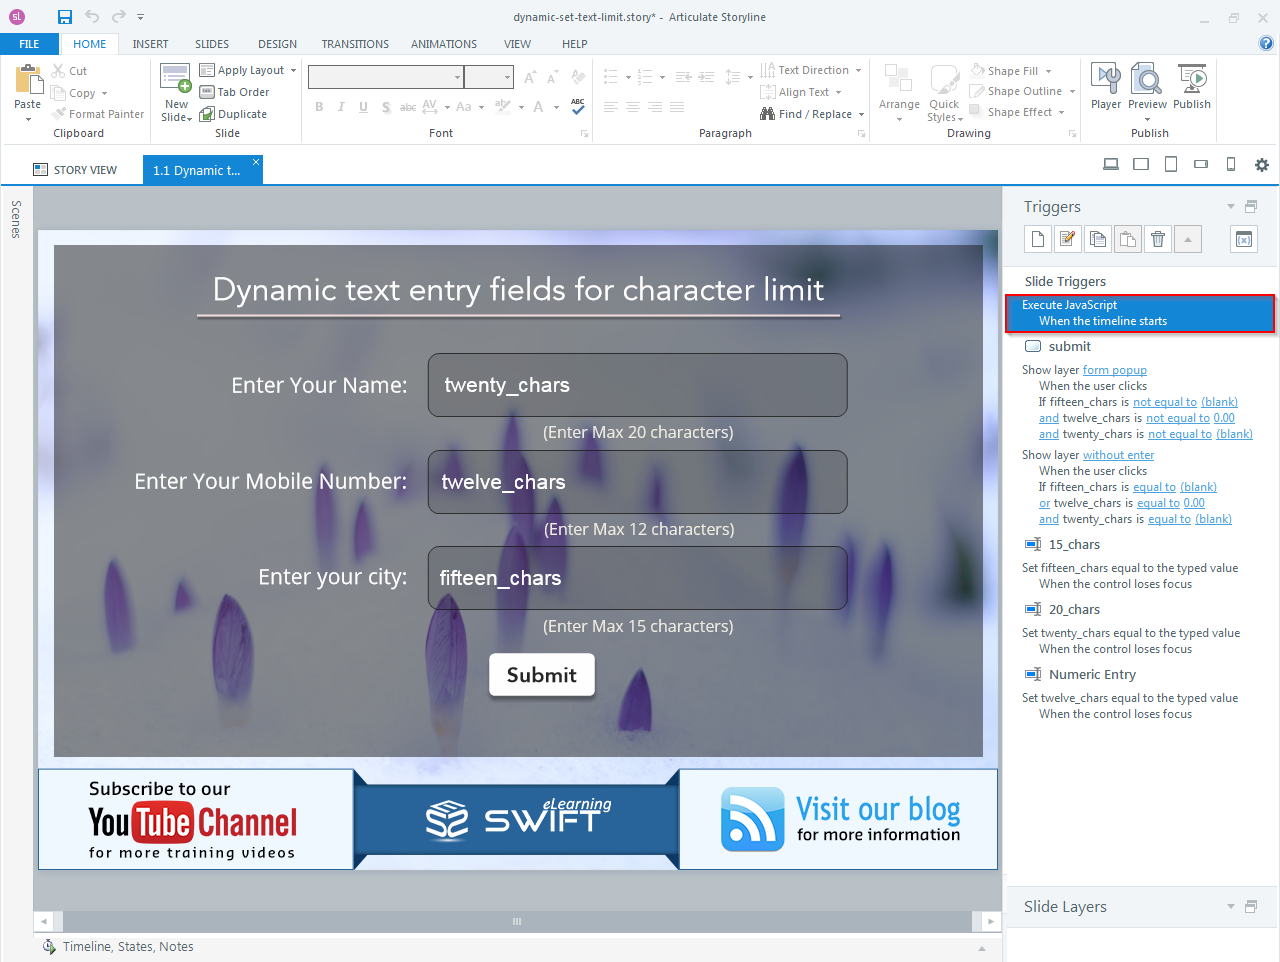 How to set Character limit for a dynamic text entry field in Articulate Storyline-step09